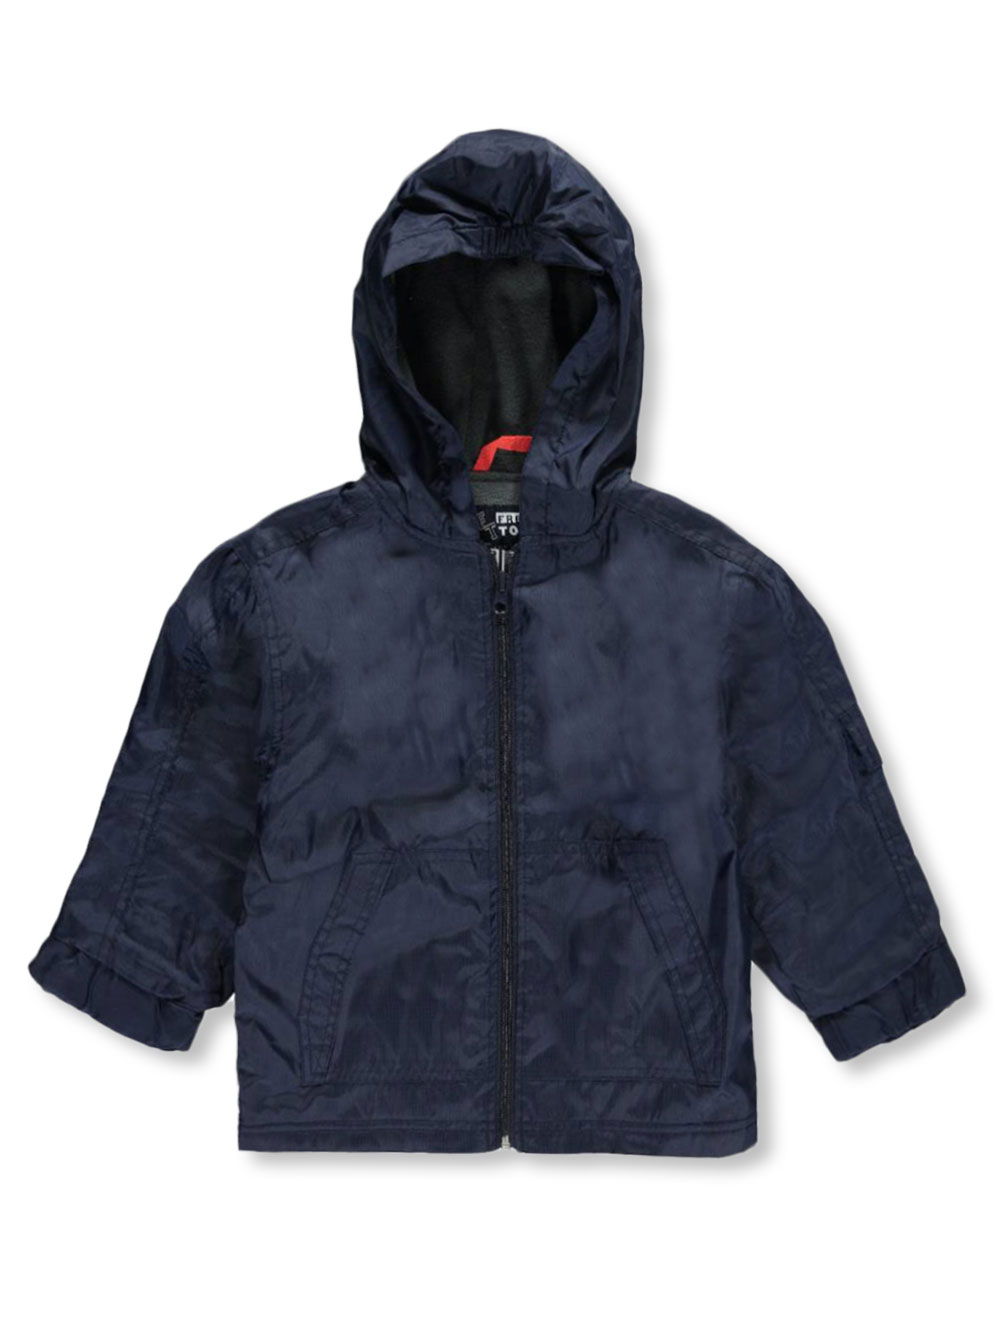 Boys Navy Outerwear